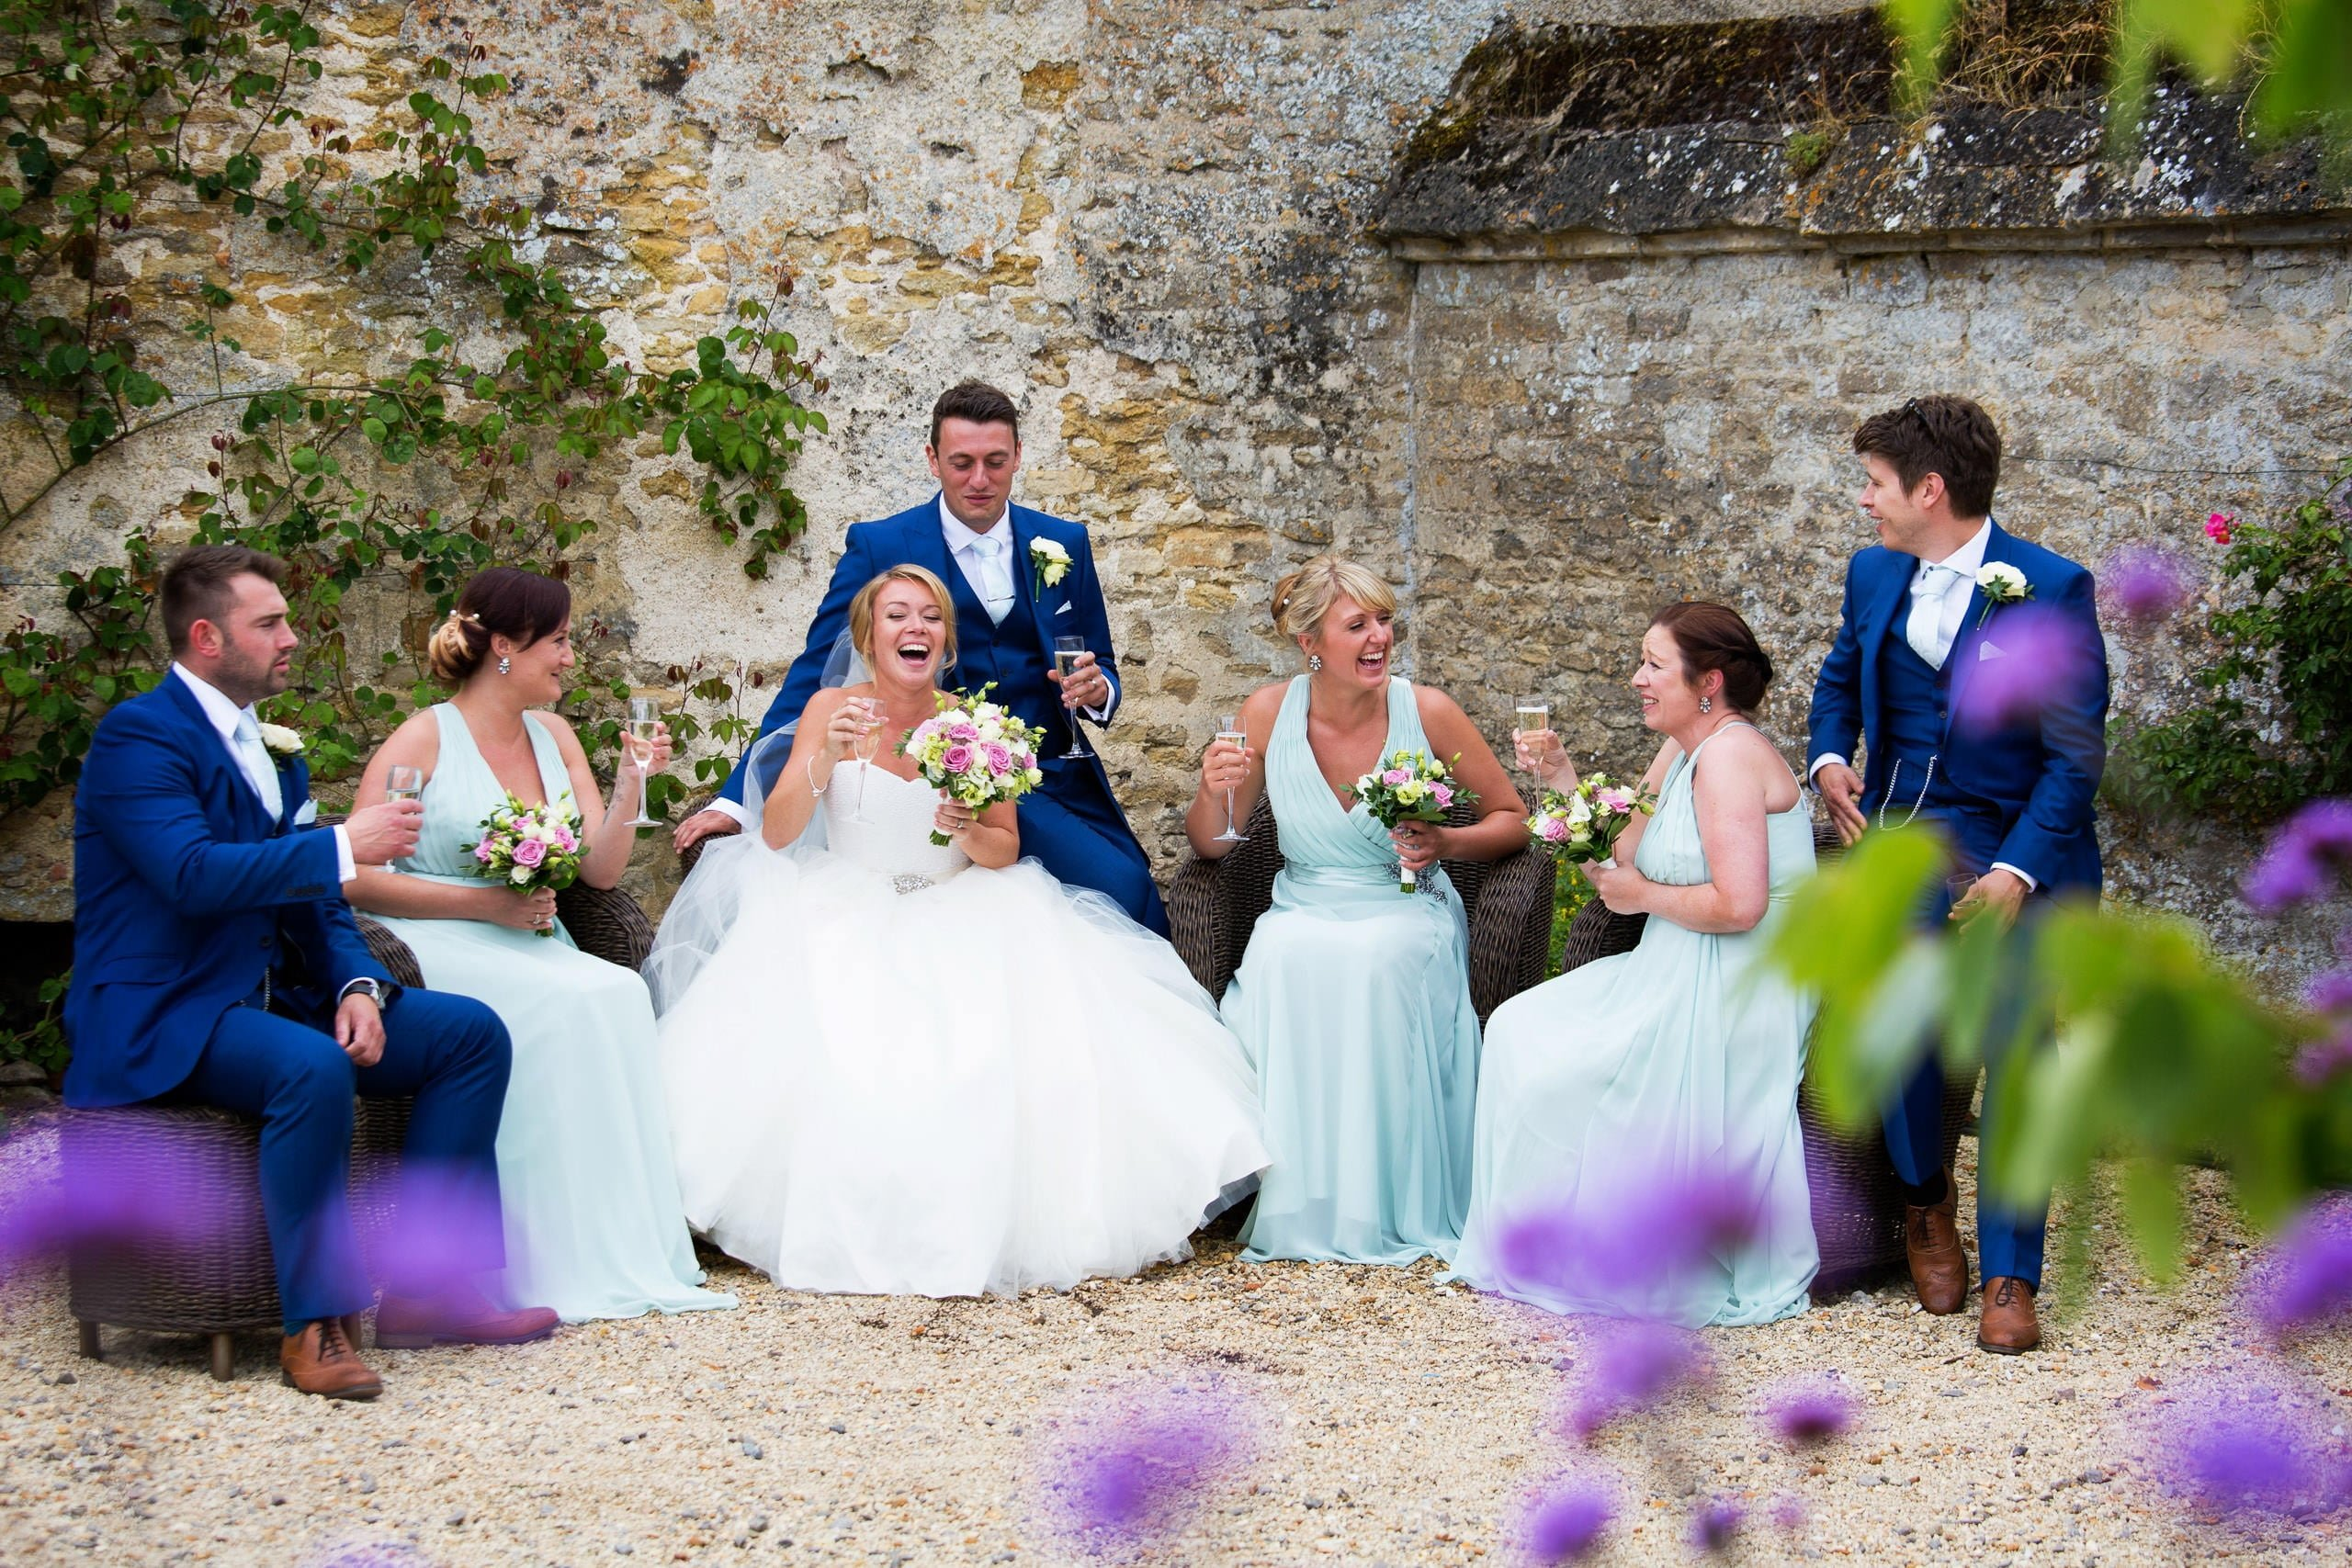 cotswolds wedding photographer,wedding photographers cotswolds